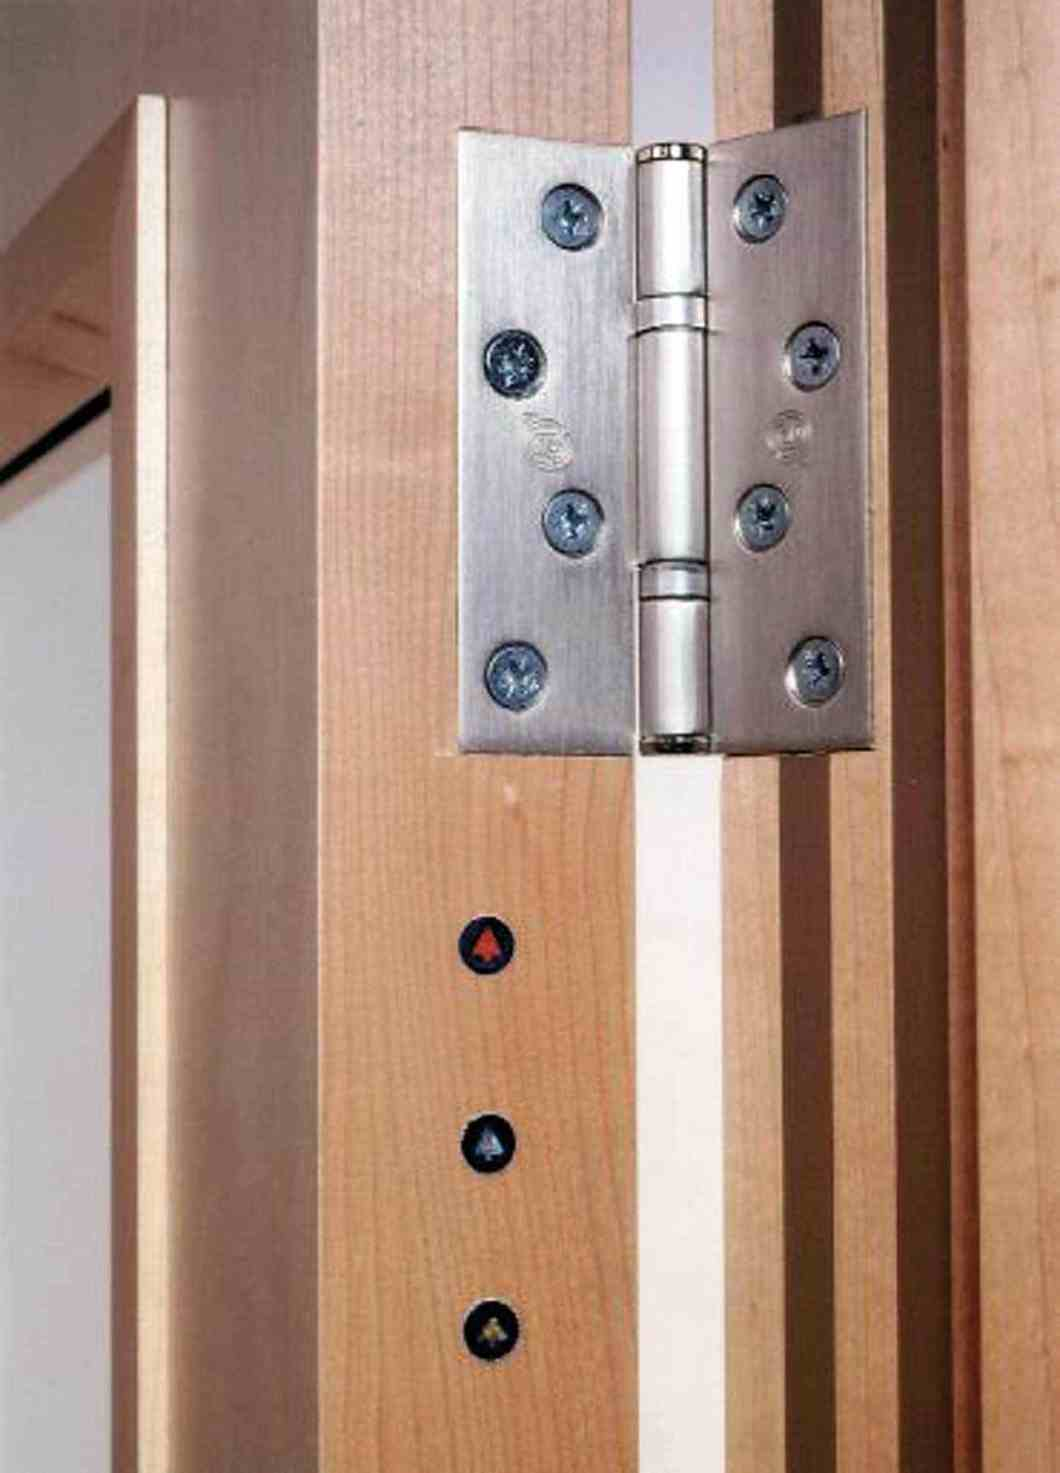 An example of a plugging system utilised by a third party certification provider for fire doors, denoting the door leaf and complete doorset has been manufactured by a third party certified company (red and silver plugs) and the doorset installed by a third party certified installer (gold plug).